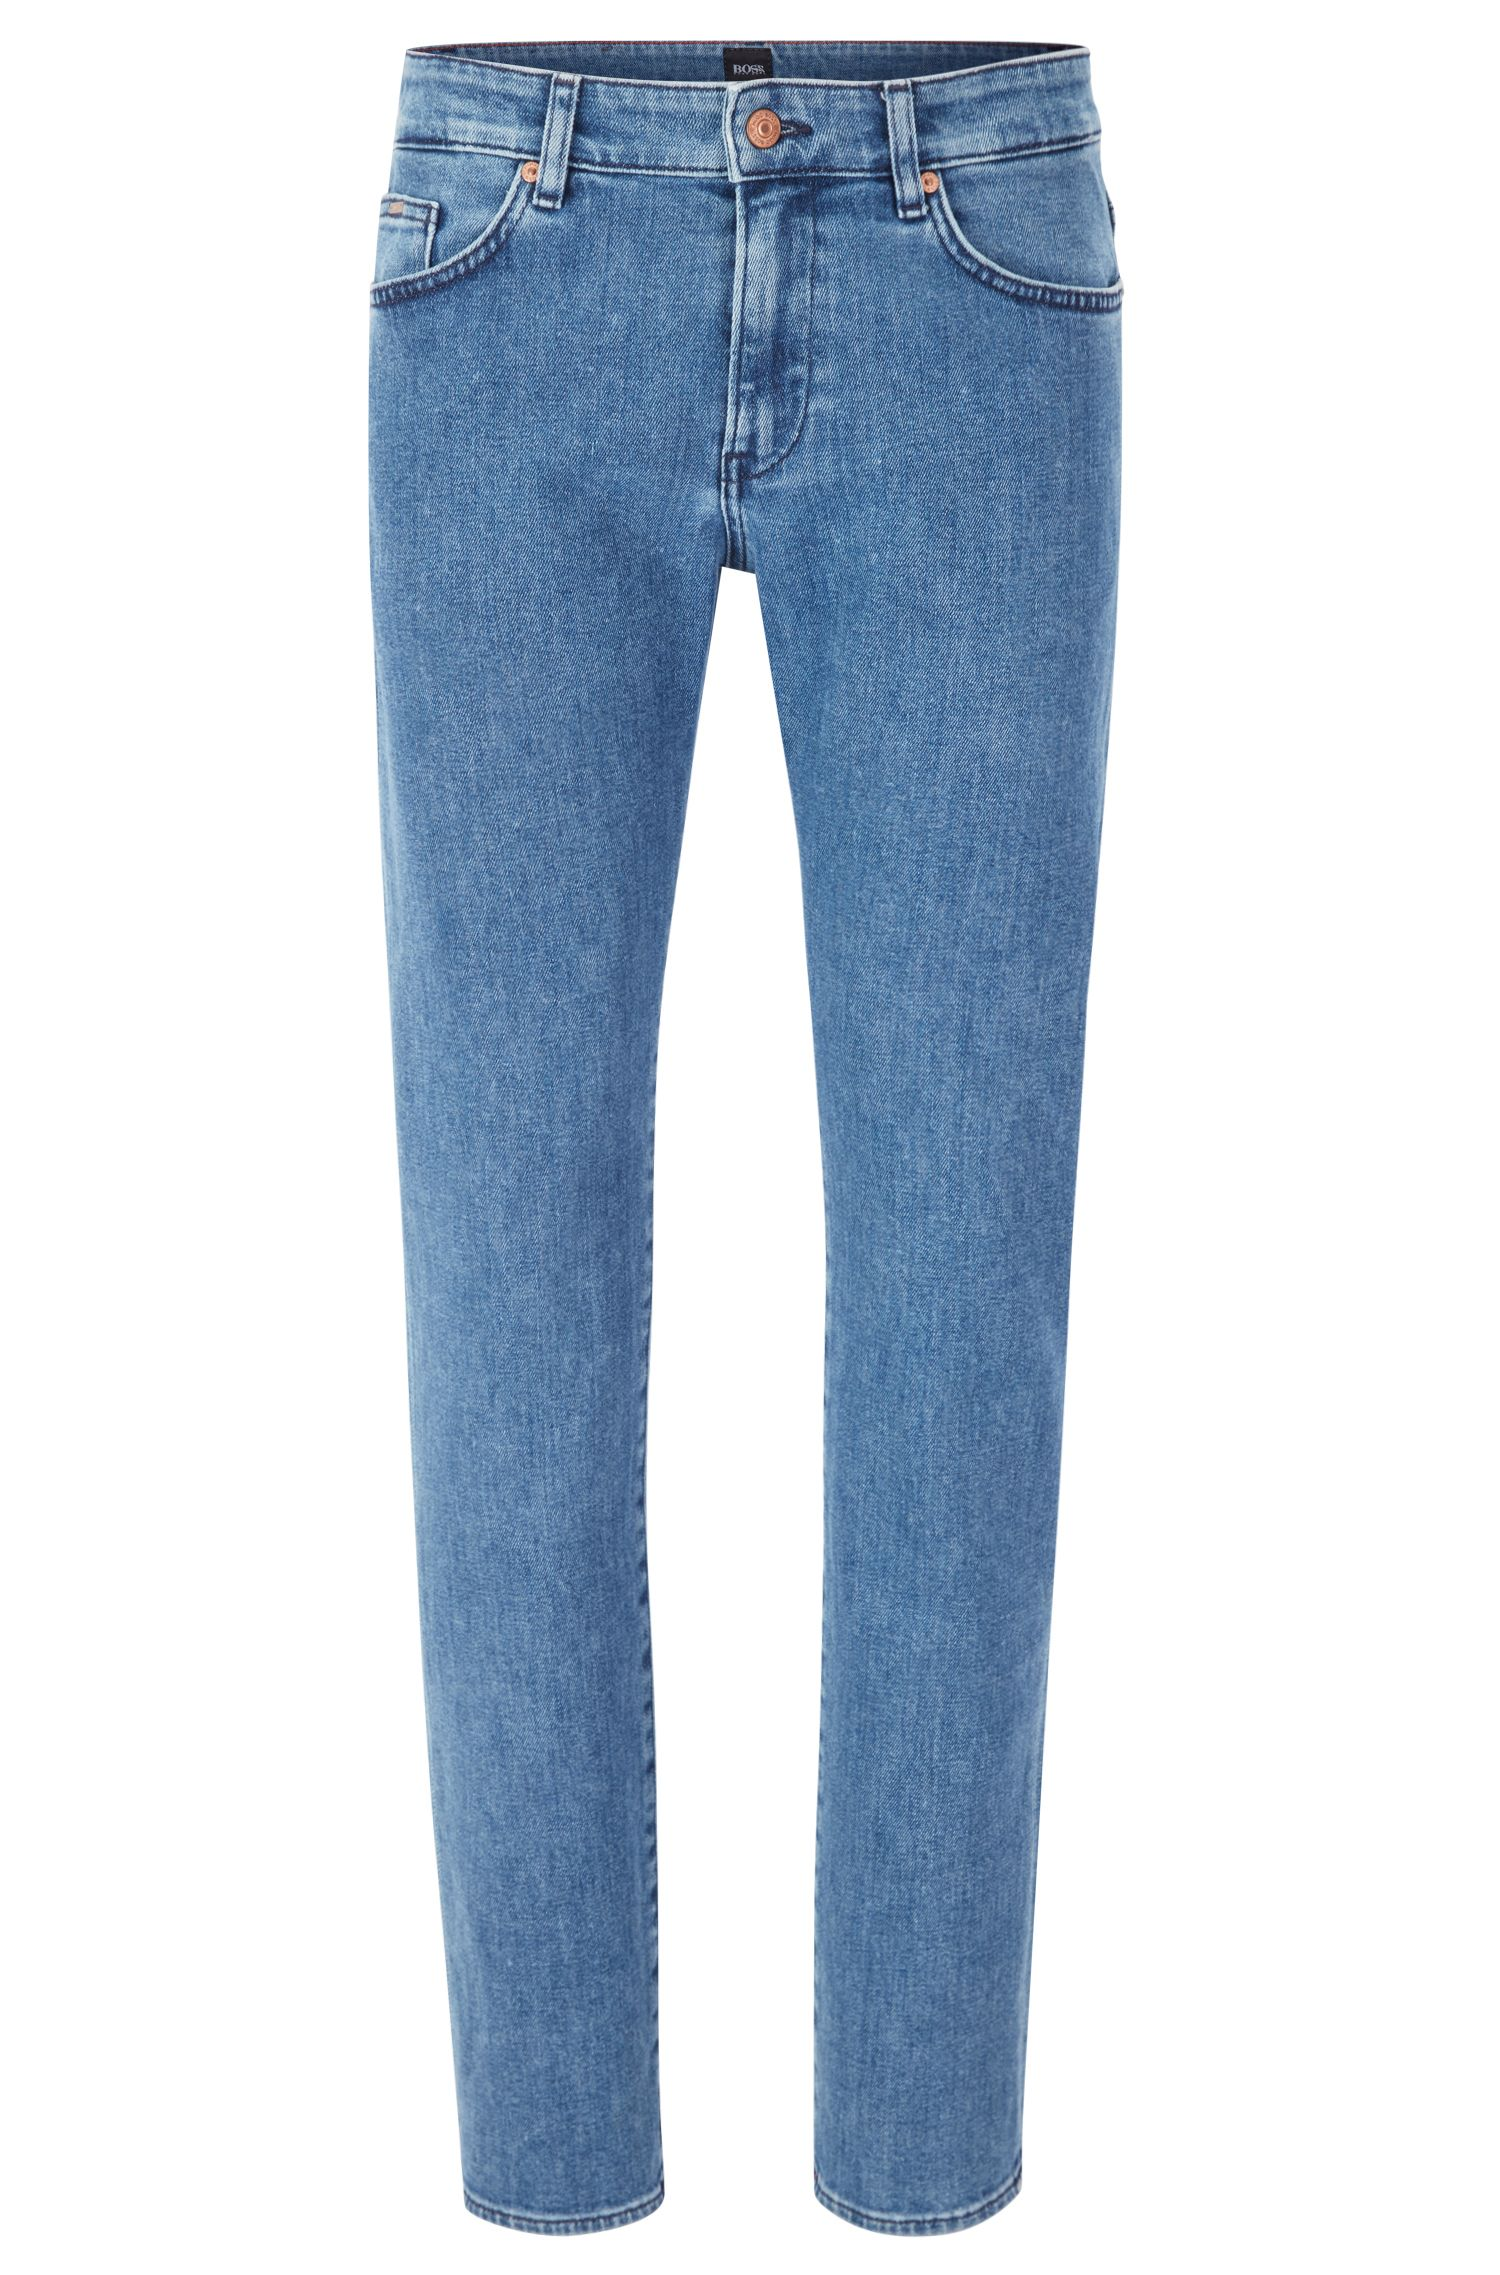 Slim-fit jeans van middelblauw stretchdenim